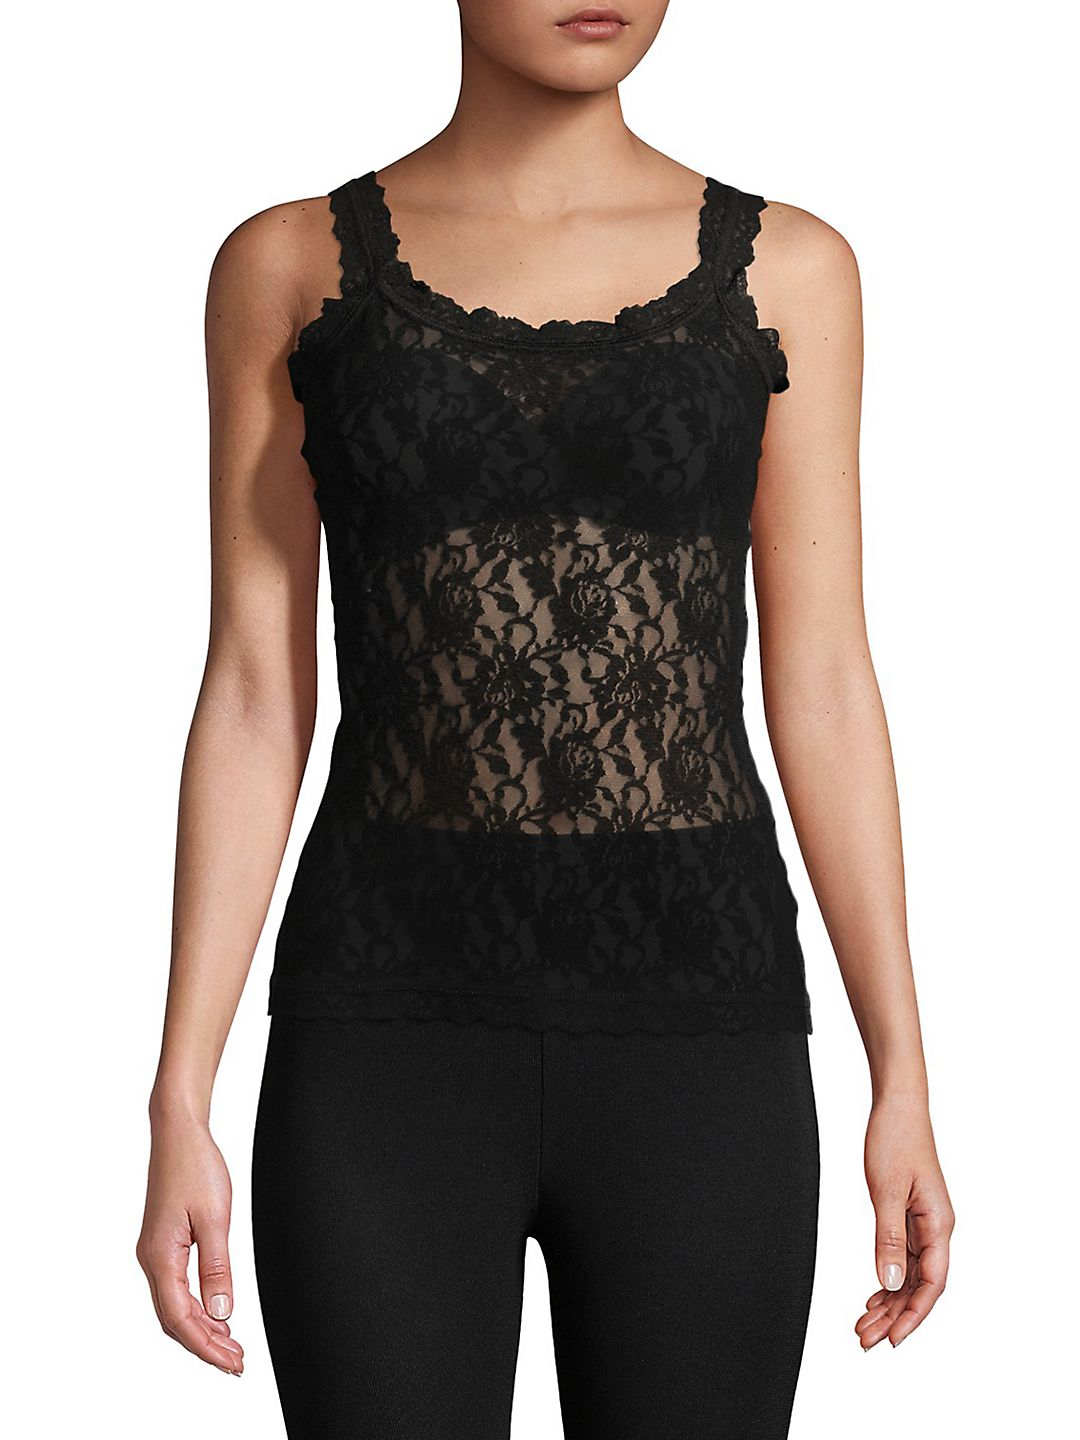 Hanky Panky 1390L Signature Lace Unlined Camisole